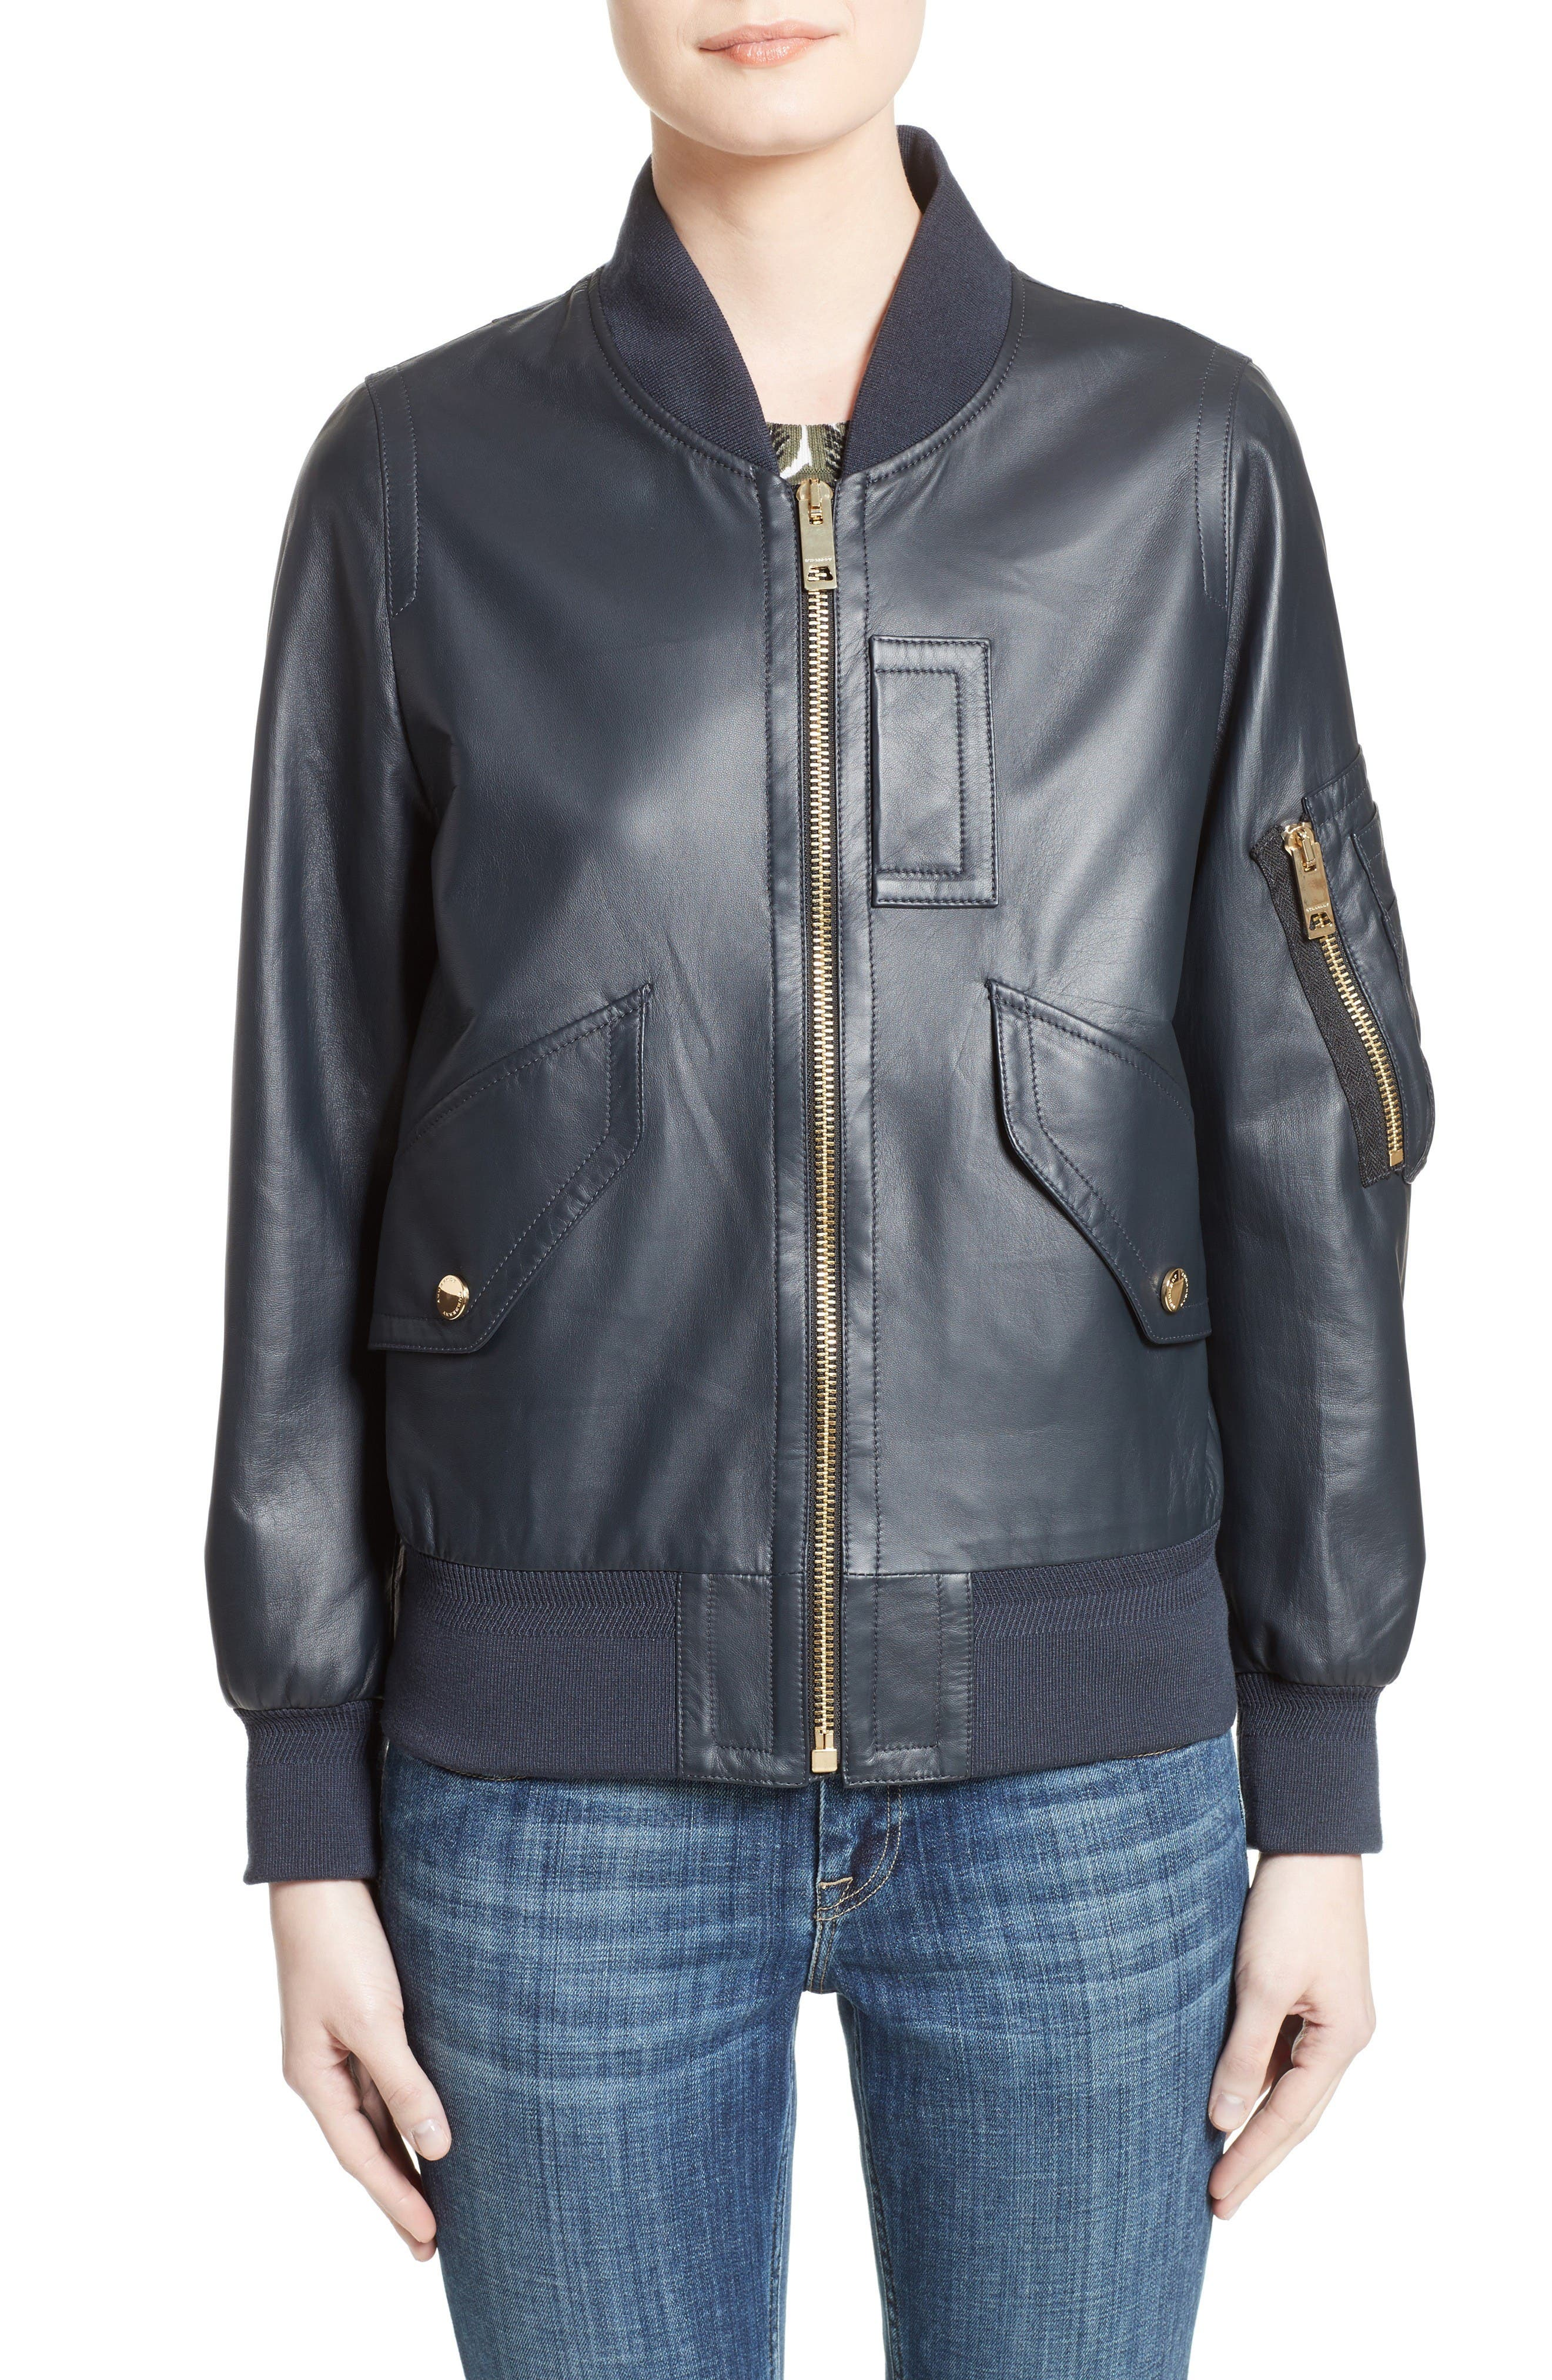 Burberry Penhale Leather Jacket